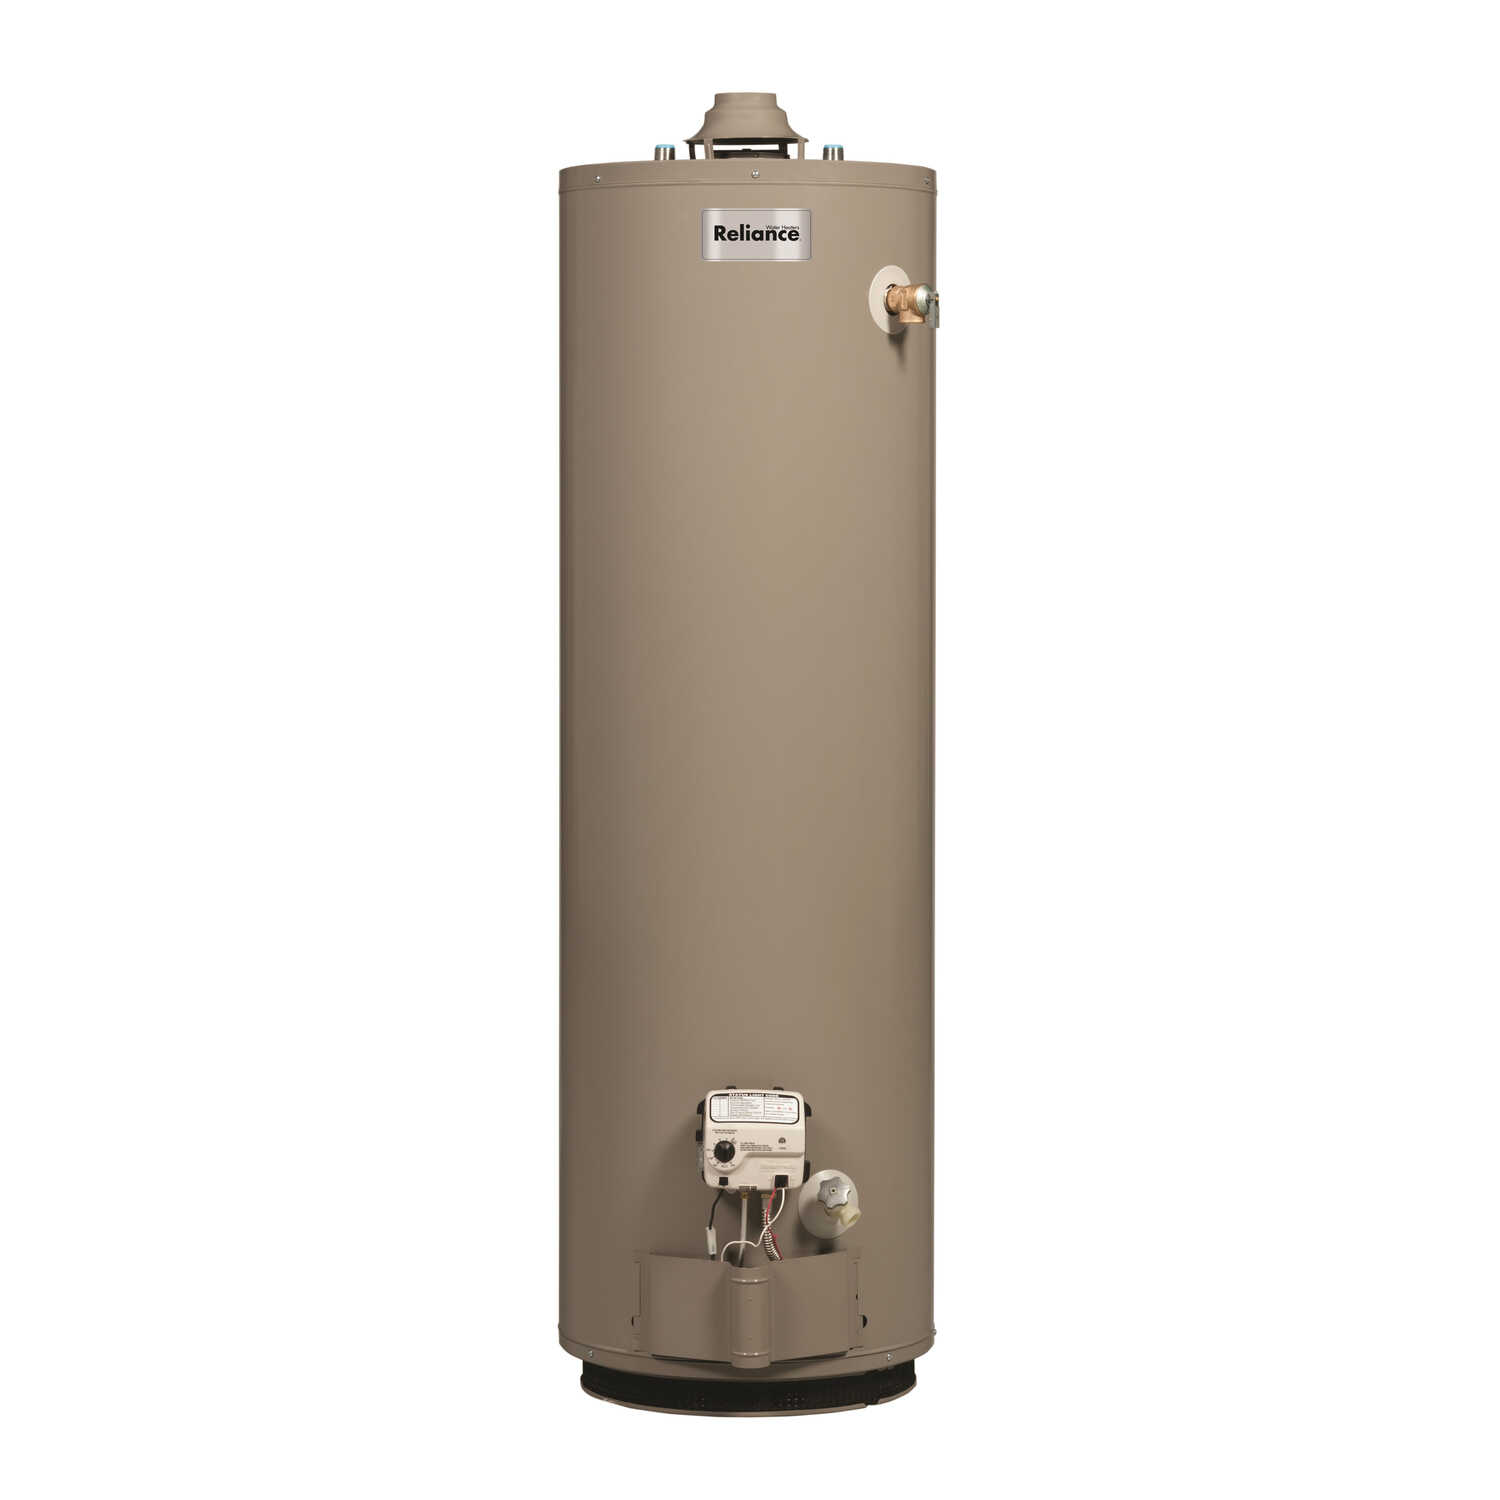 Reliance  Natural Gas  Water Heater  62 in. H x 18 in. L x 18 in. W 40 gal.